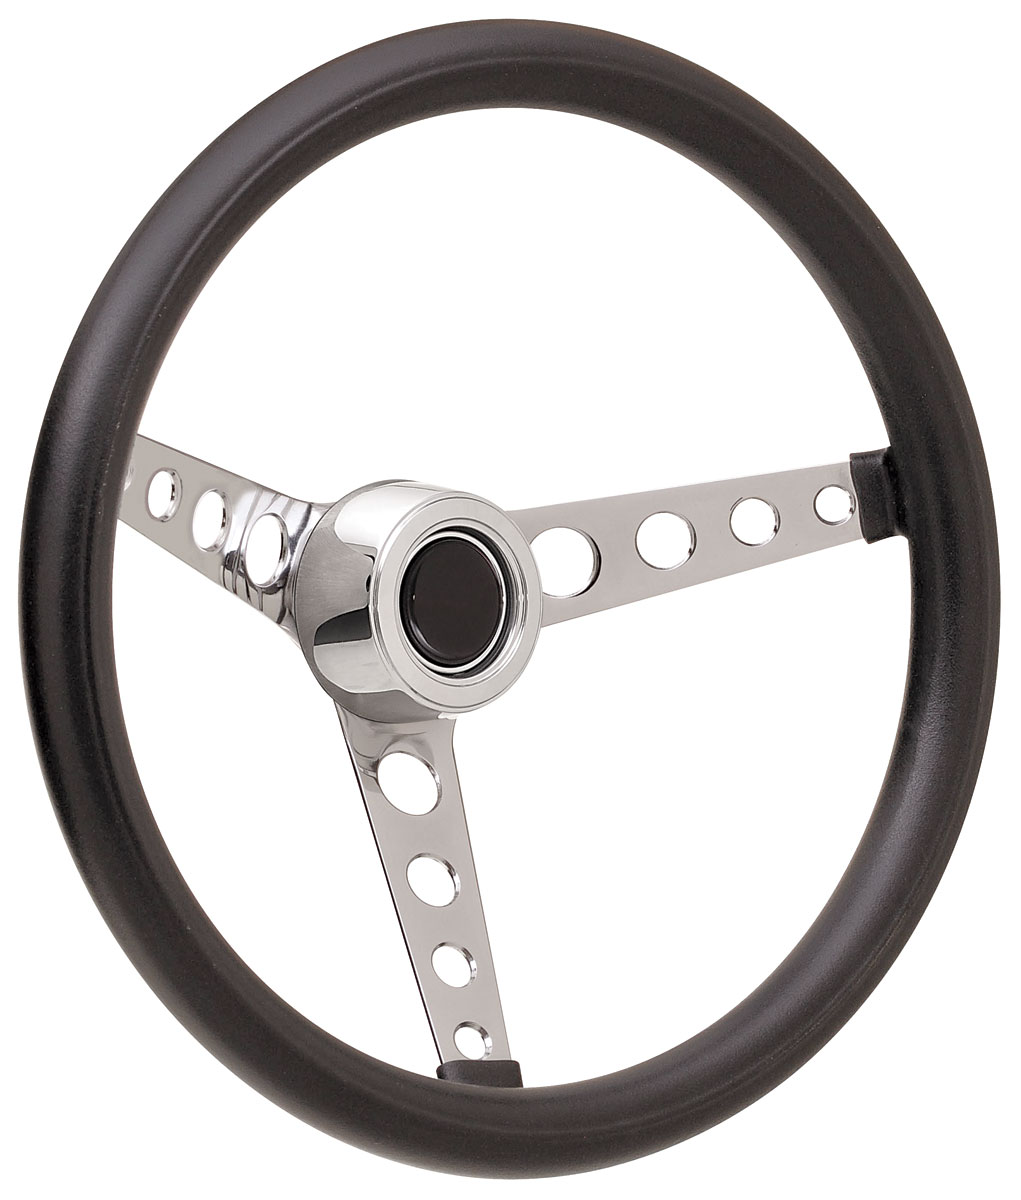 Steering Wheel Kit, 69-89 GM, Classic Foam, Hi Rise Cap, Plain, Black